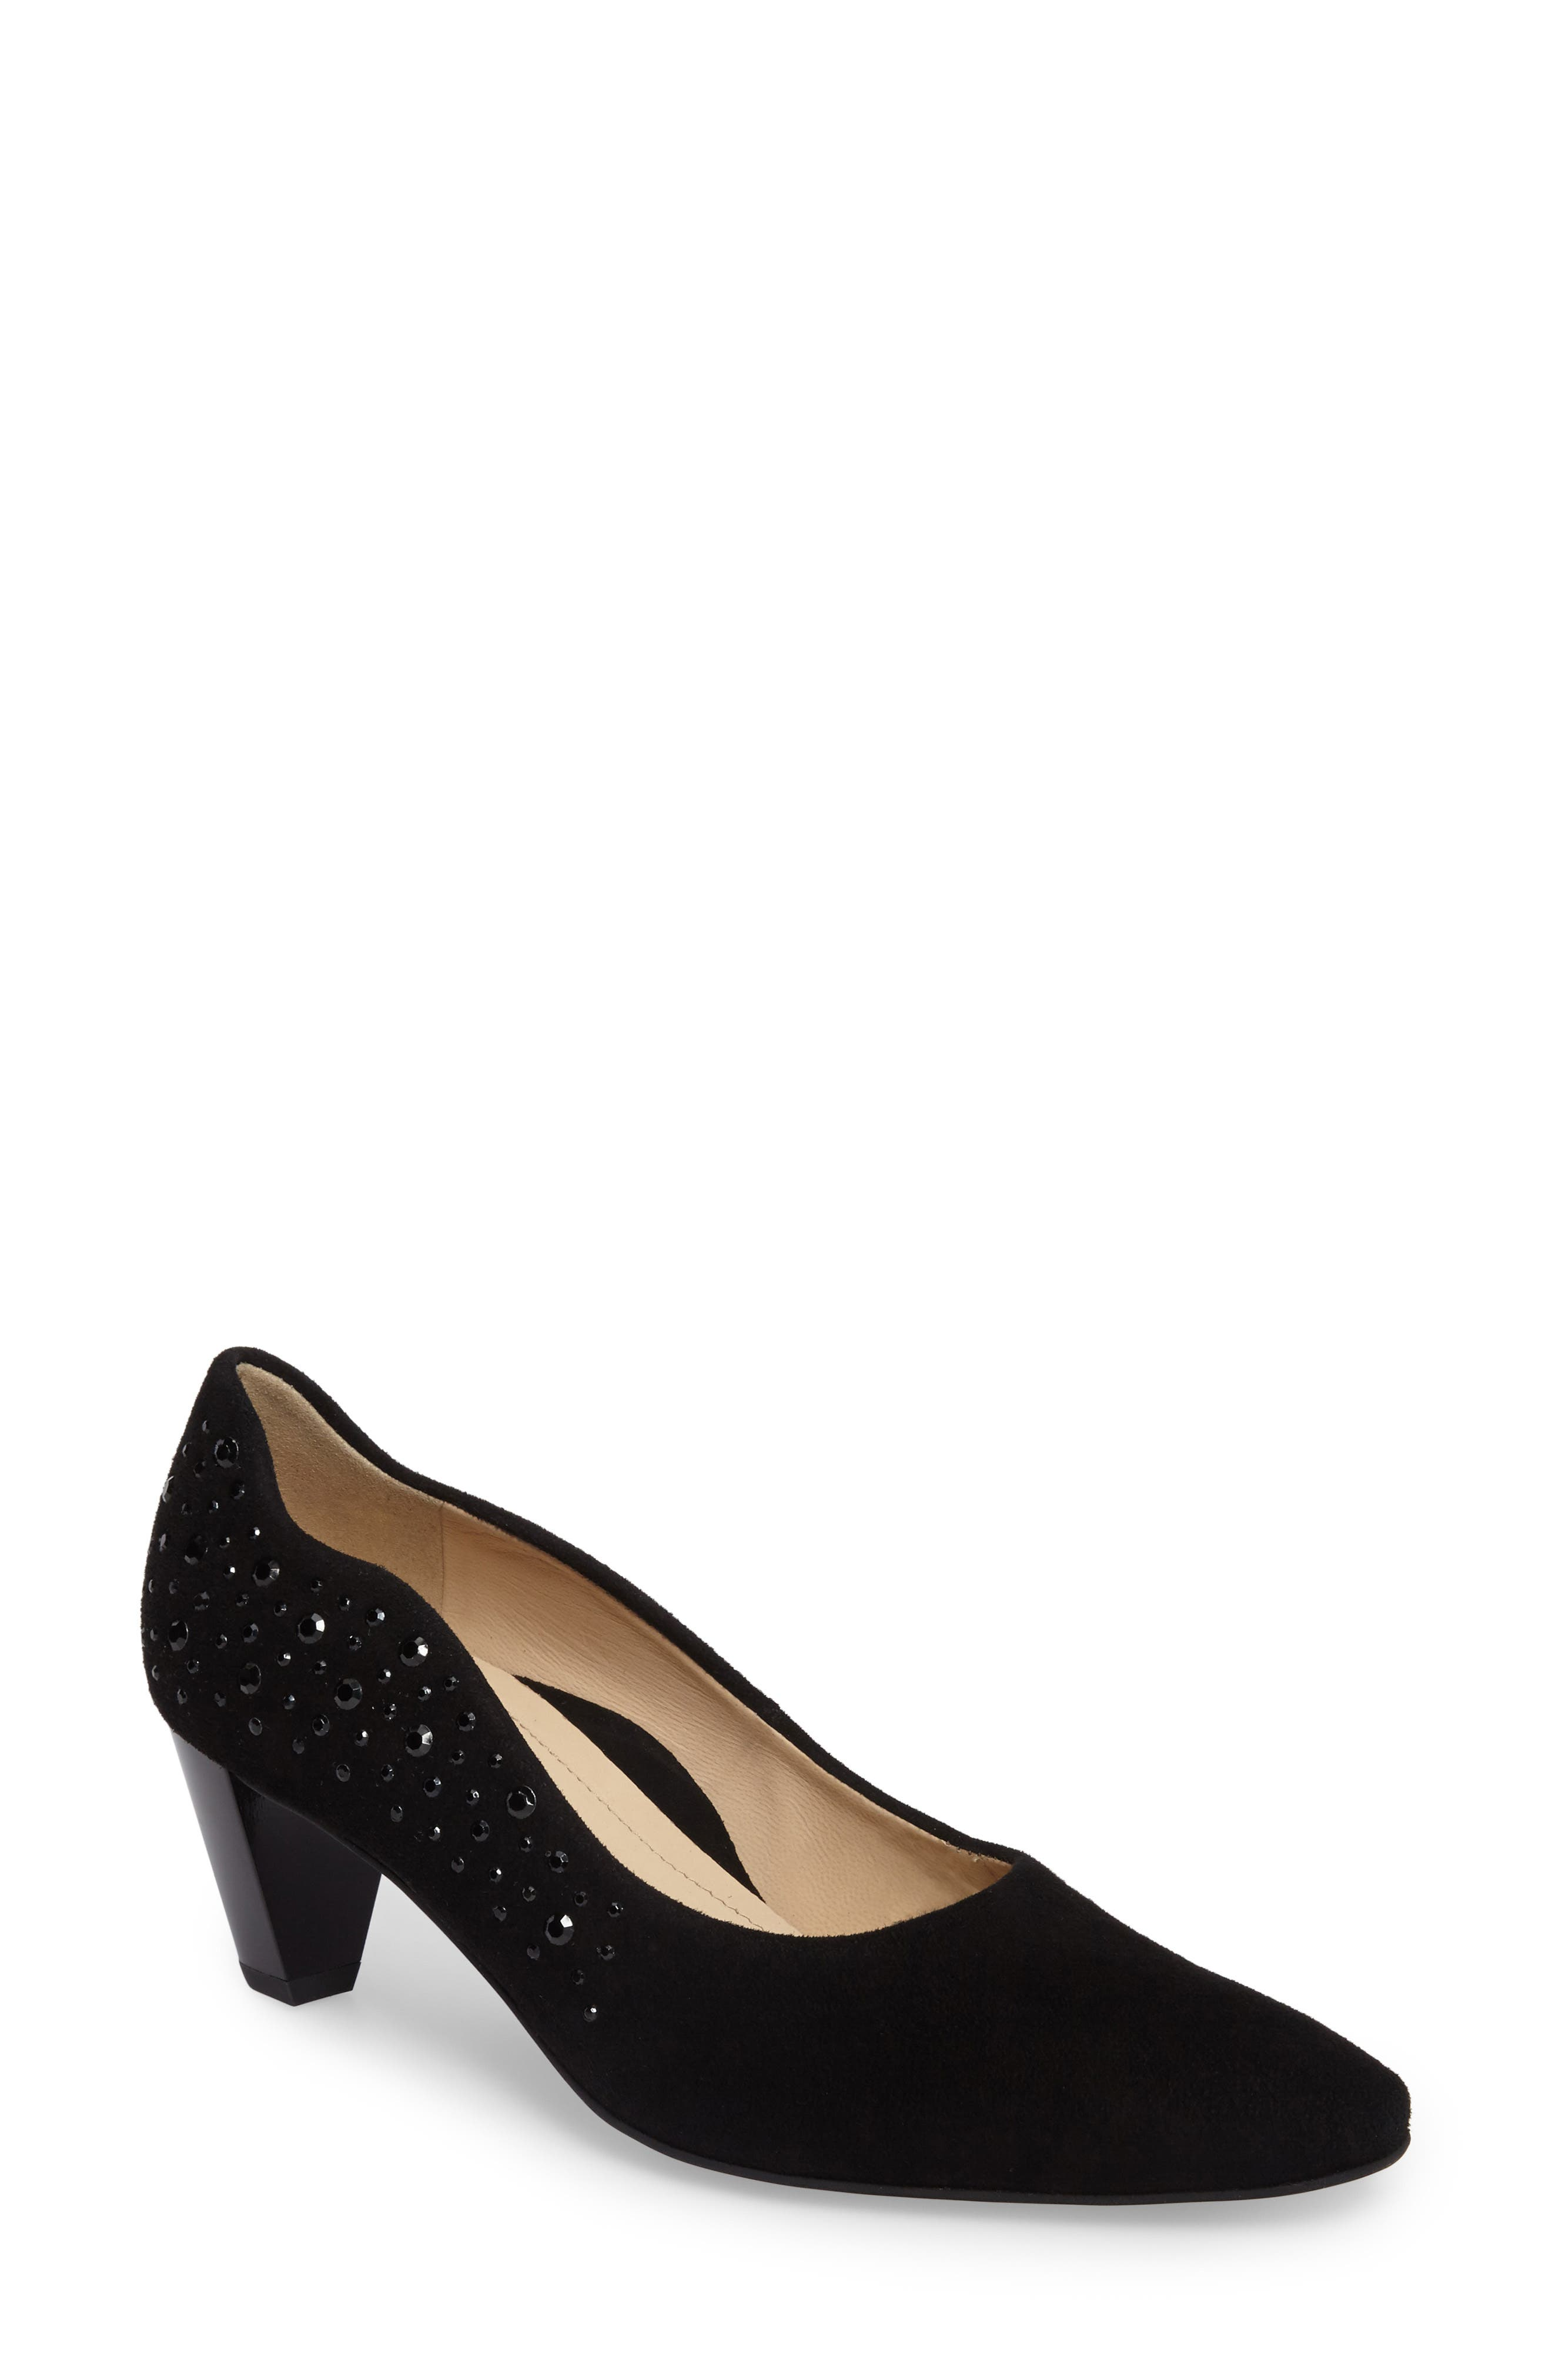 Alternate Image 1 Selected - ara Pippa Crystal Embellished Pump (Women)